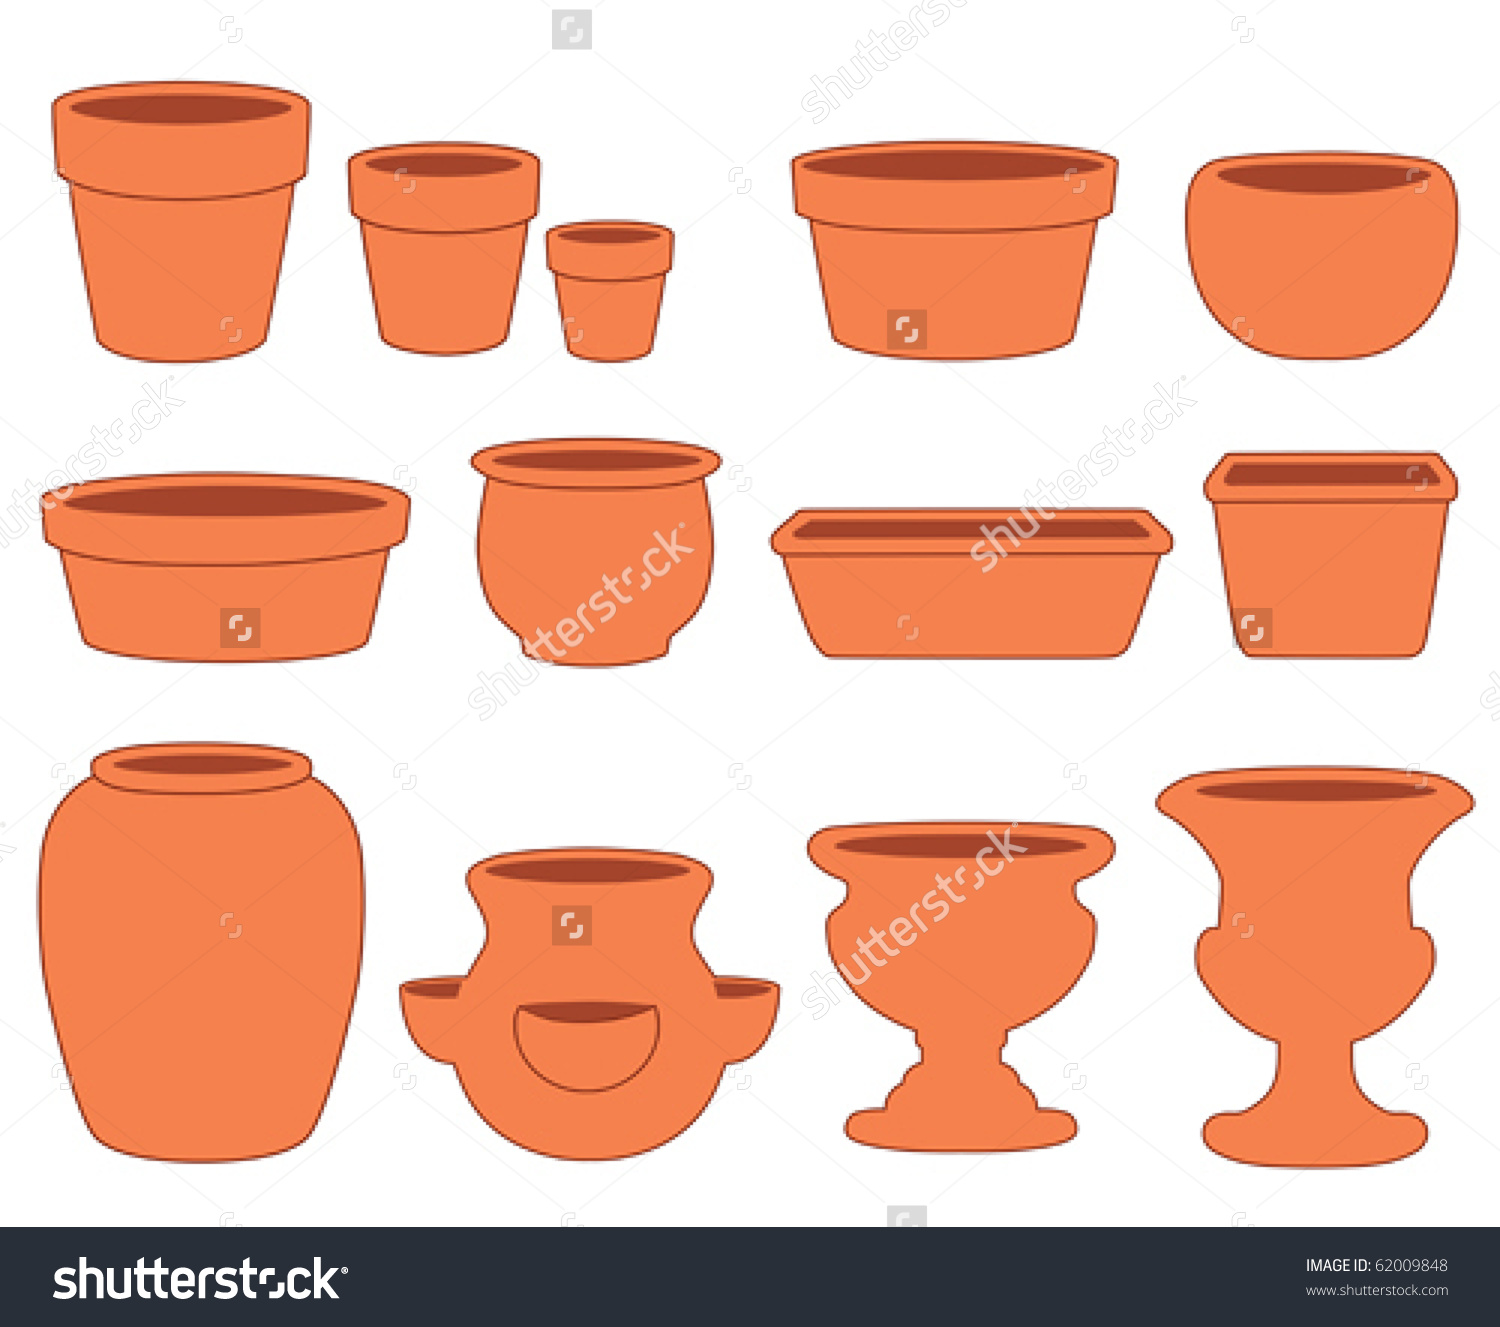 Flowerpots Gardening Do Yourself Projects Clay Stock Vector.